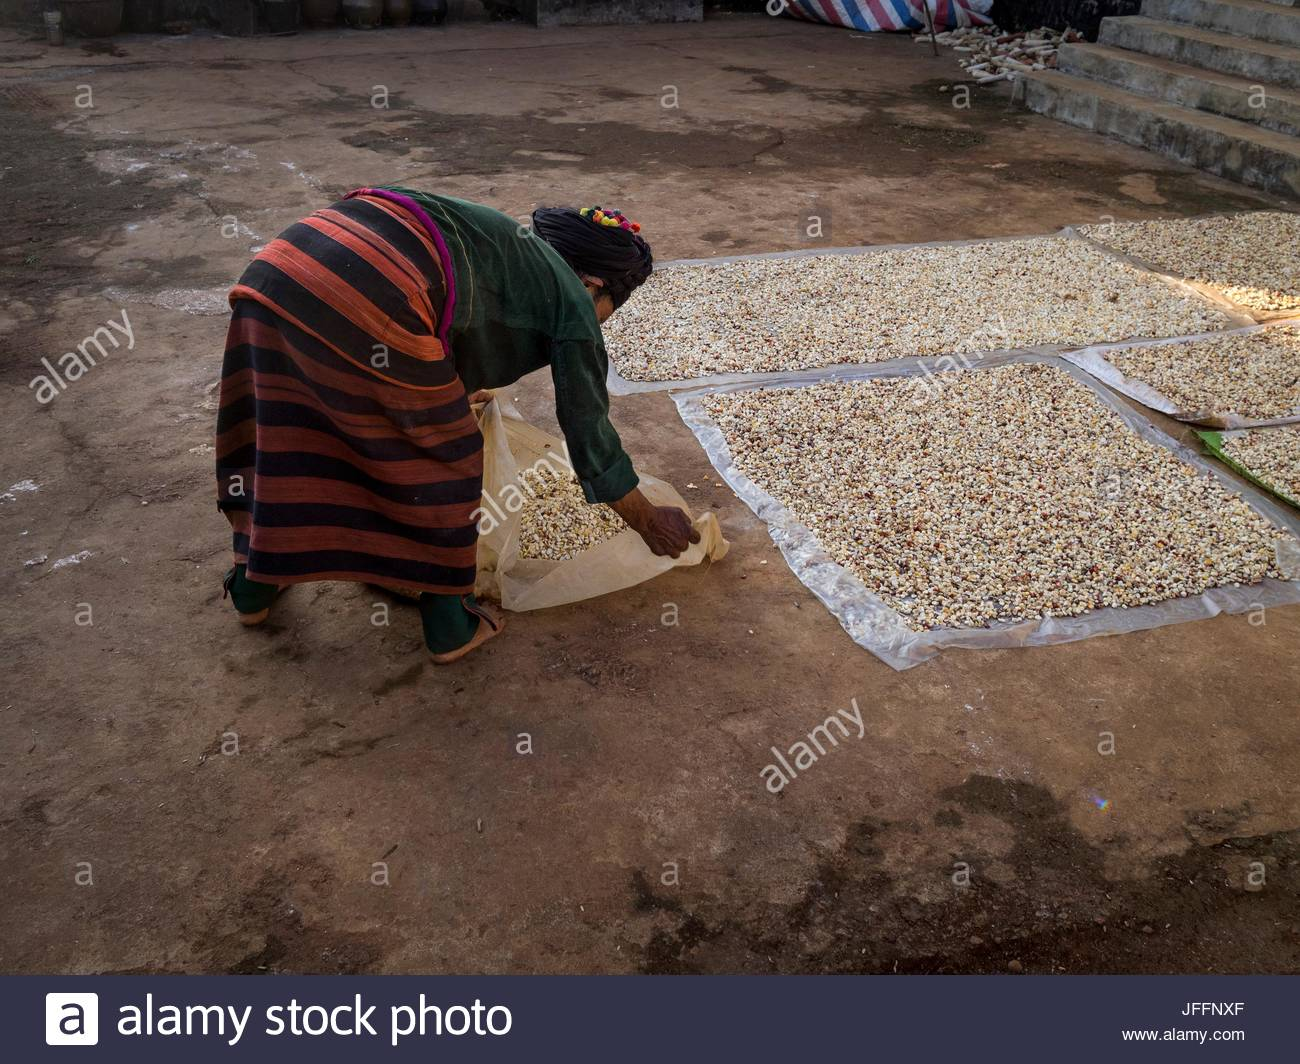 A Deang woman spreads corn kernels to dry at a farm in Yunnan Province. - Stock Image